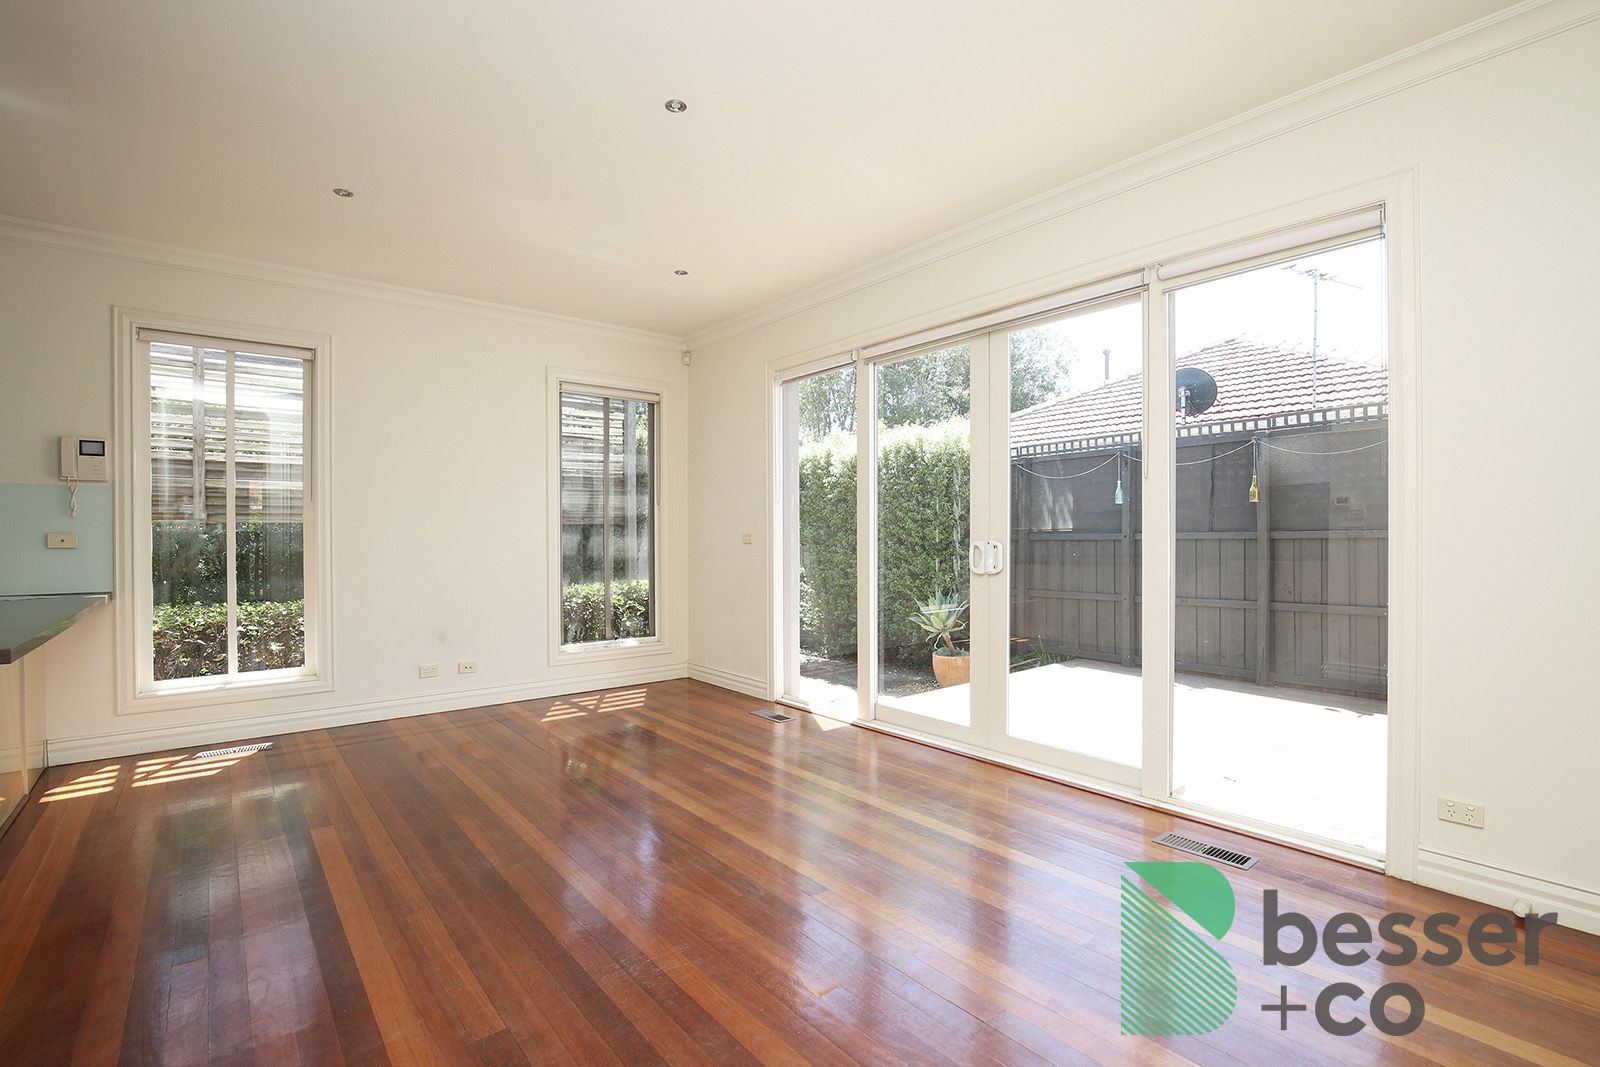 1A Percival Street, Brighton East VIC 3187, Image 1